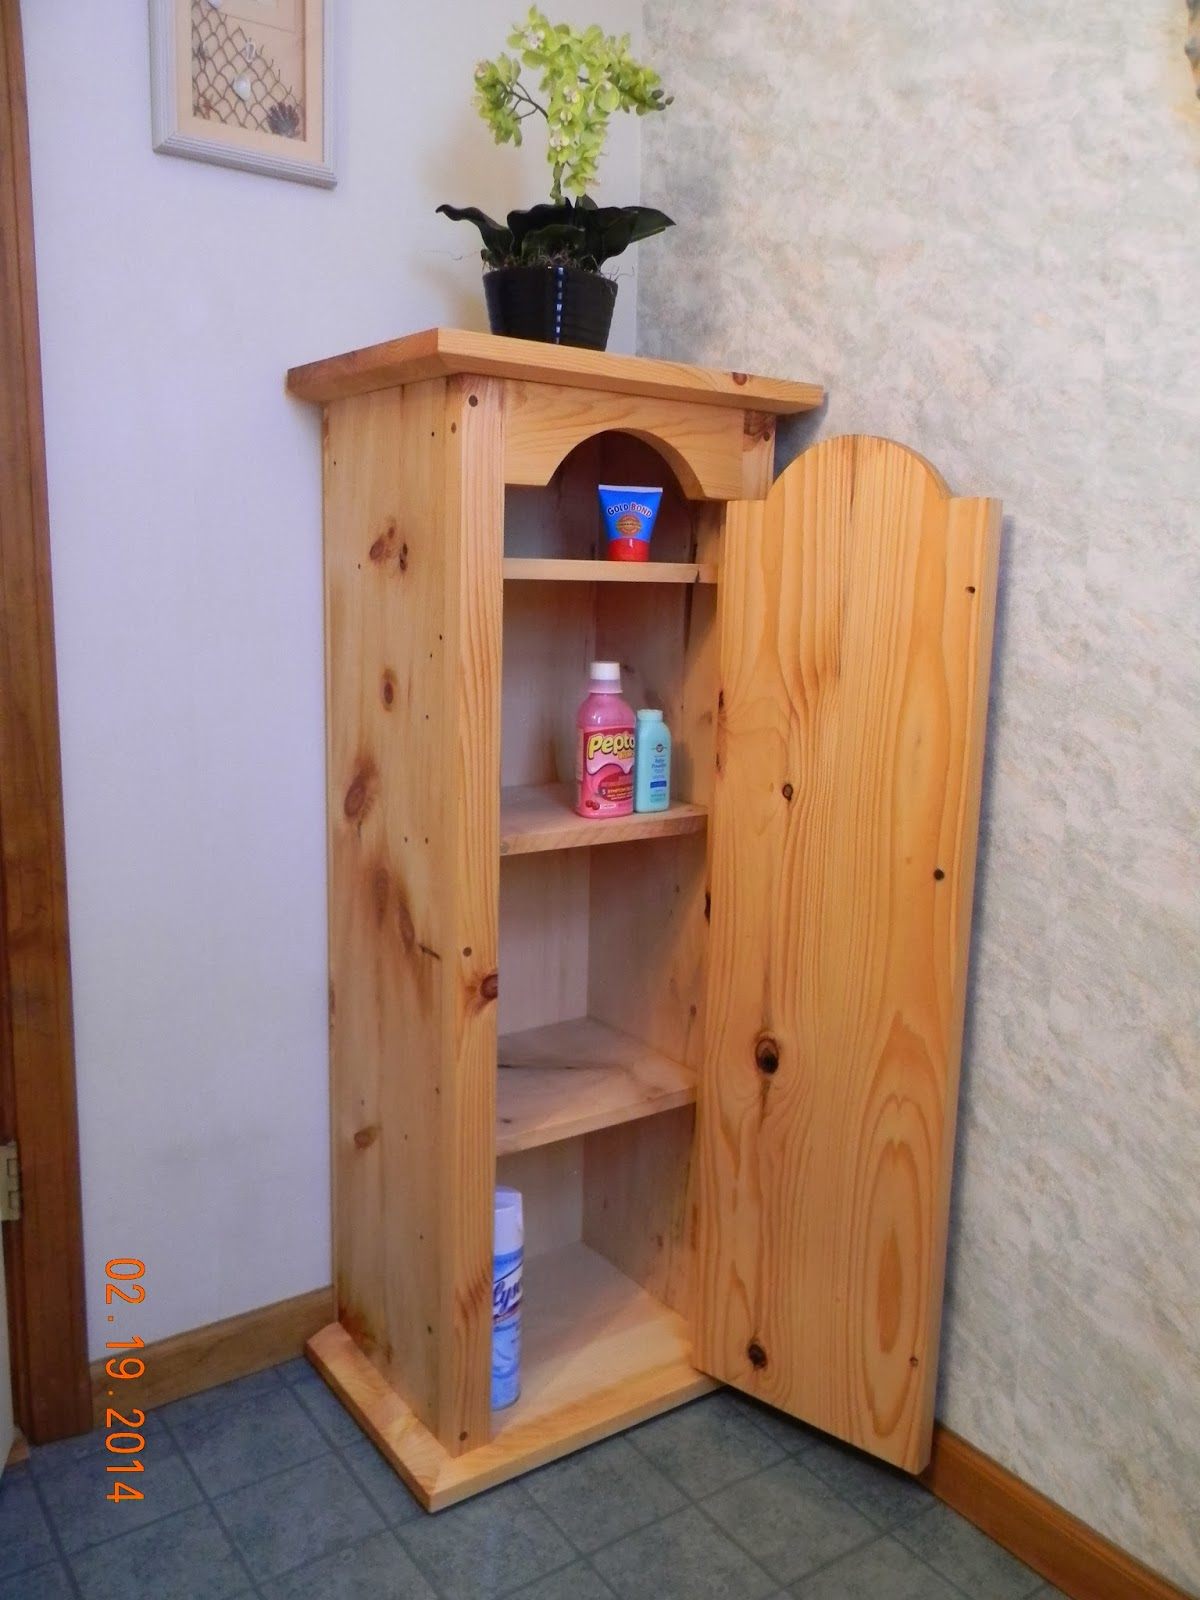 oakenheart woodcraft pine bathroom cabinet